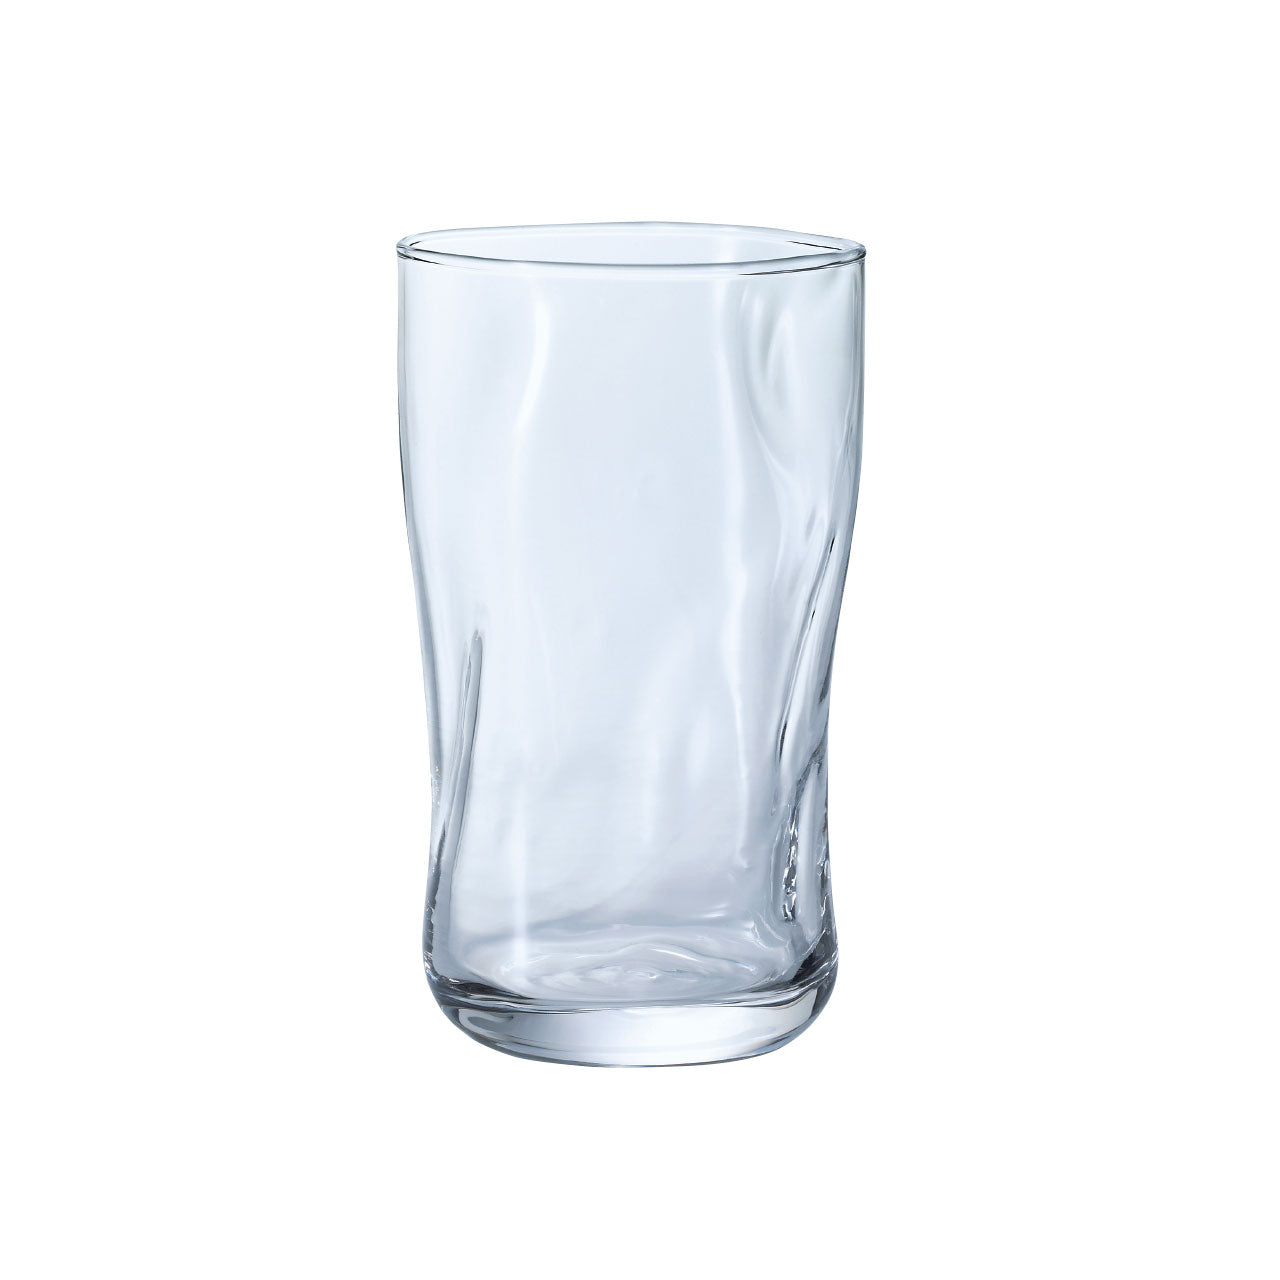 Organic Shaped Fluid Glass Tumbler 16 fl oz